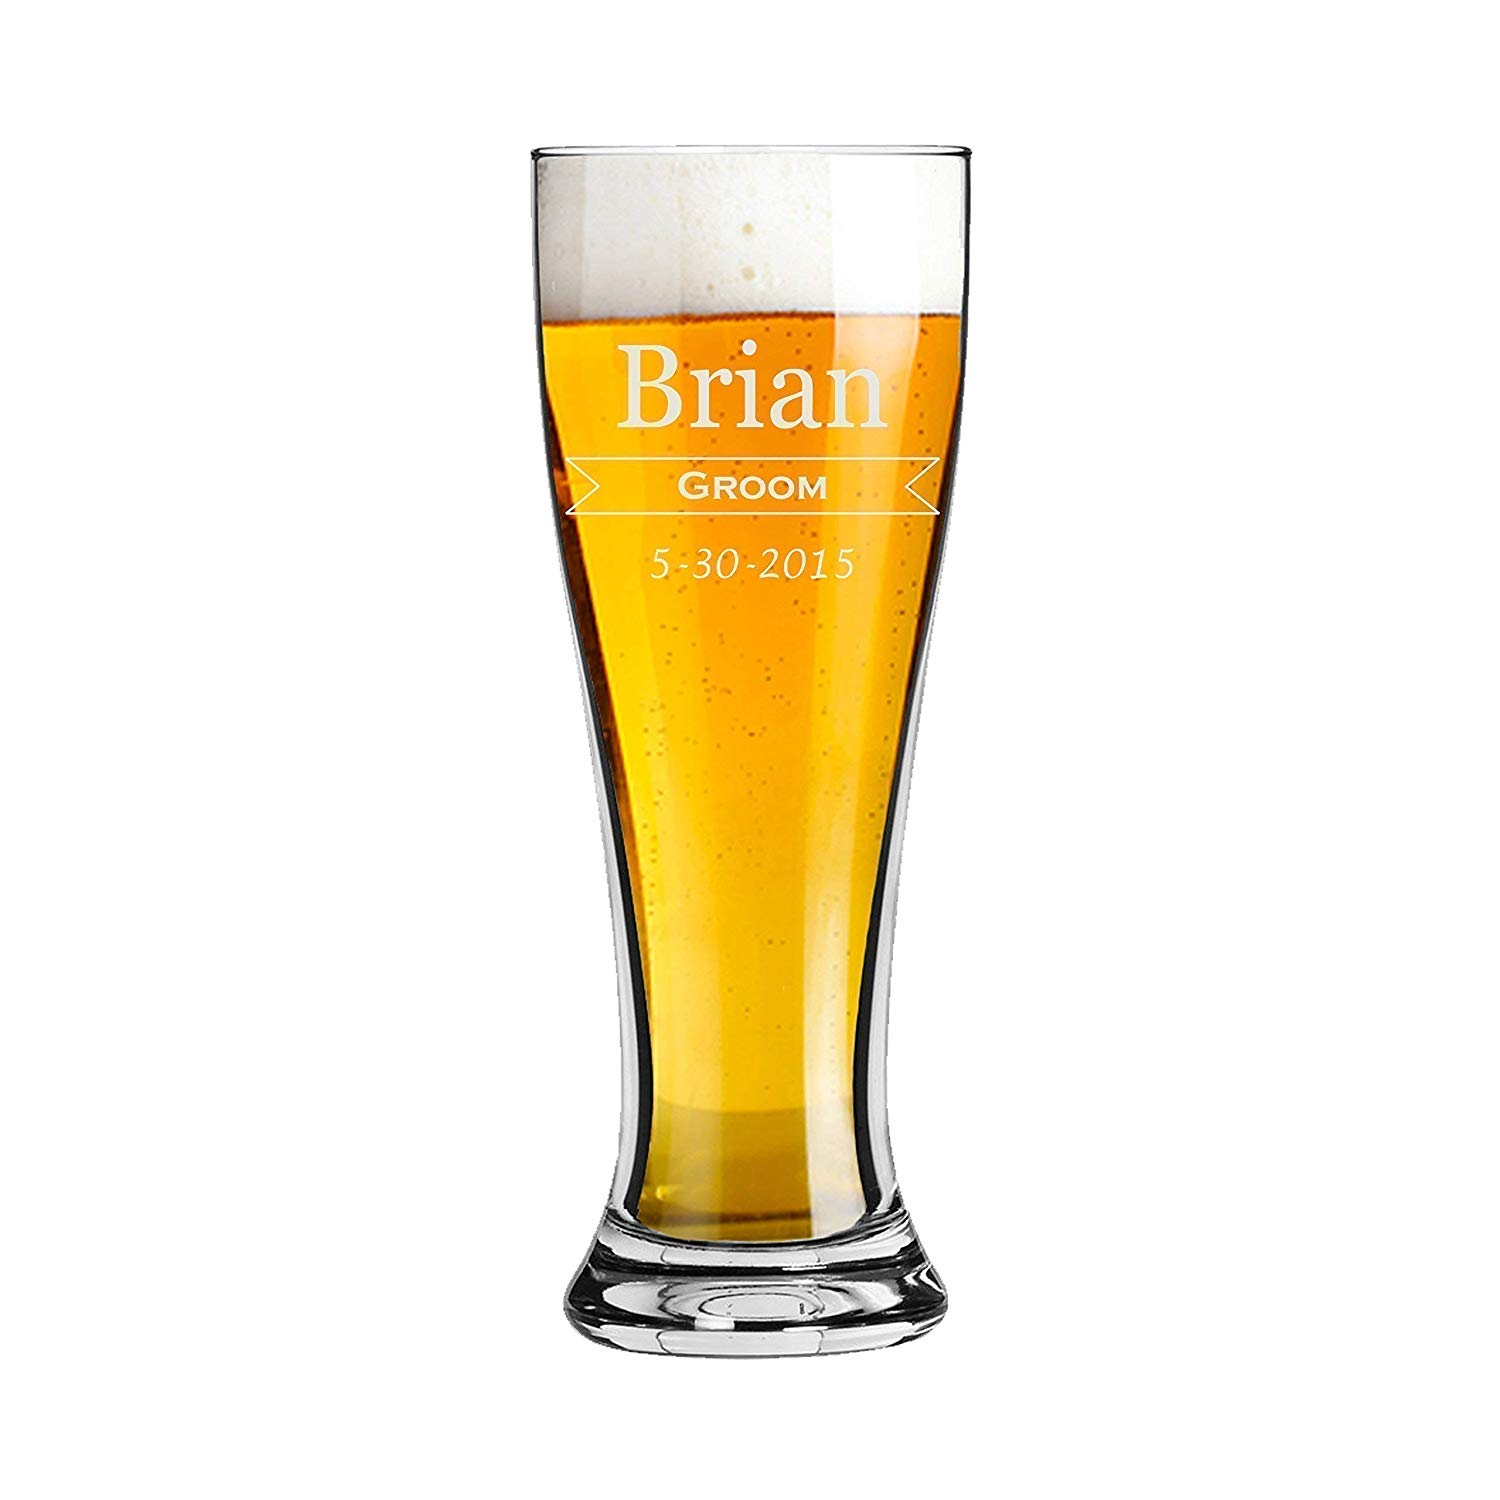 Groomsmen - Pilsner 16 oz Pint Beer Glass - Classic Design - Personalized Custom Engraved - Bride and Groom, Bridesmaid, Bridal Party, Wedding Gift - Any Quantity